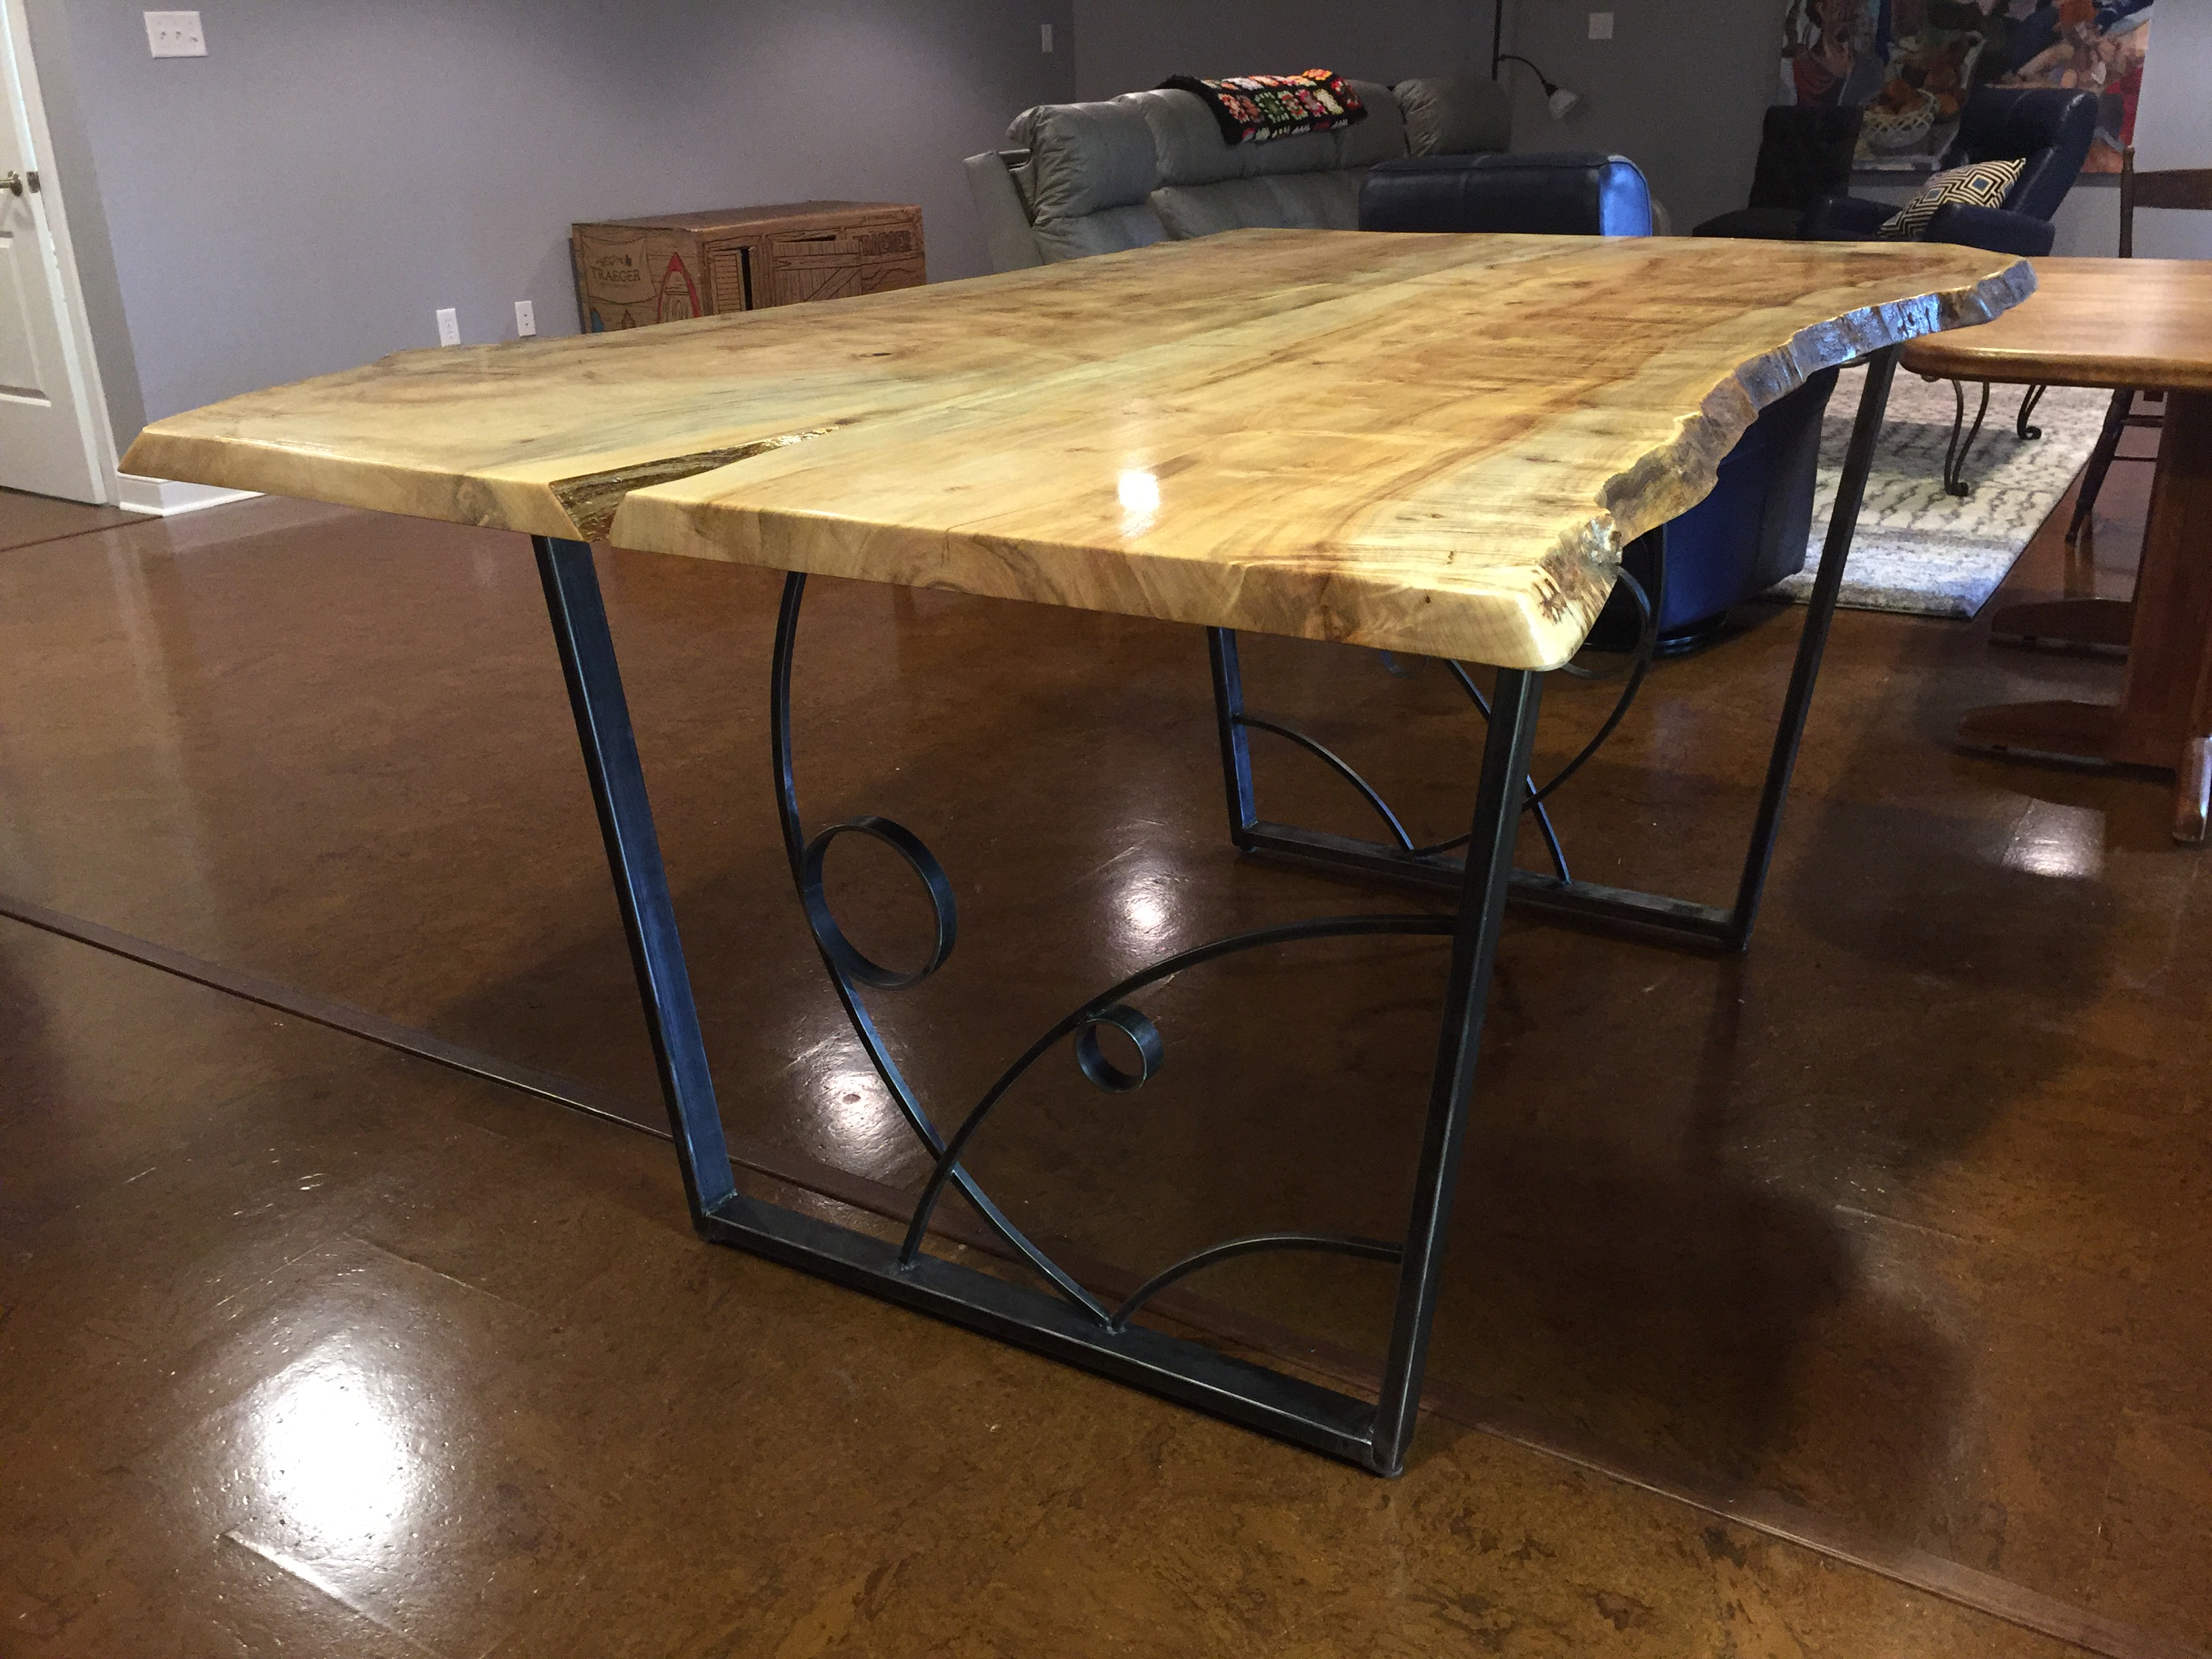 Live Edge Table (collaboration with woodworker Keith Beam)